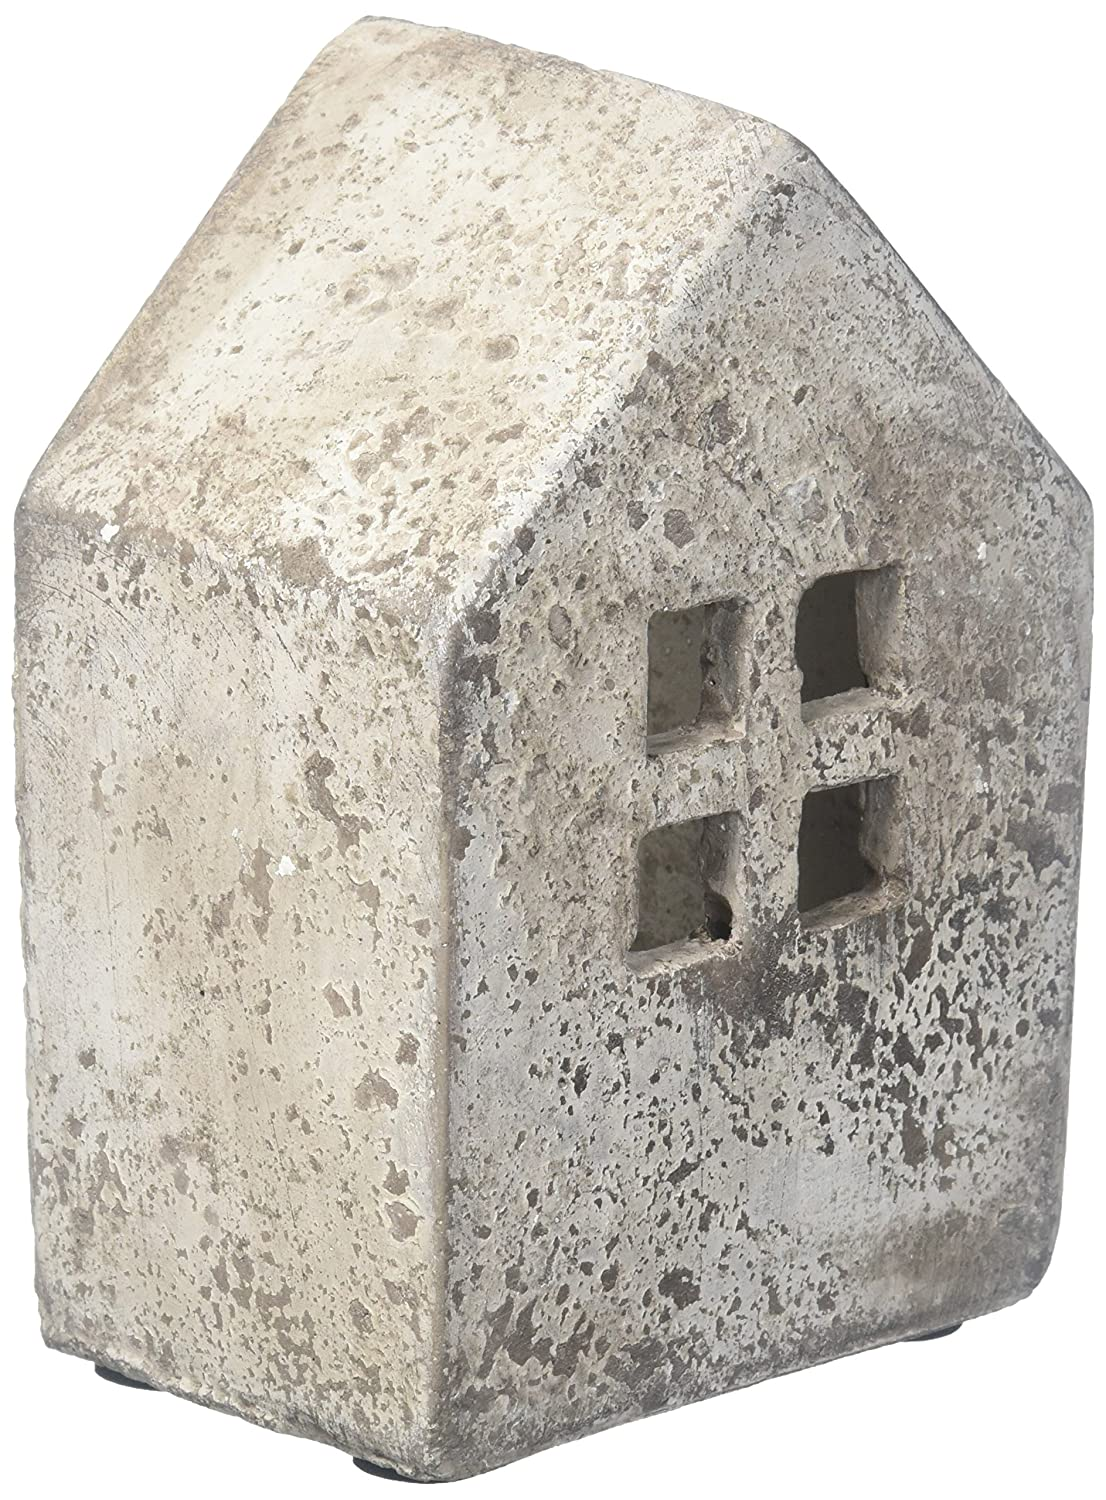 Abbott Collection Home SMALL WIDE HOUSE CANDLE HOLDER-6-Inch Height Chaozhou Ceramics 27-RELIC/7506 SM